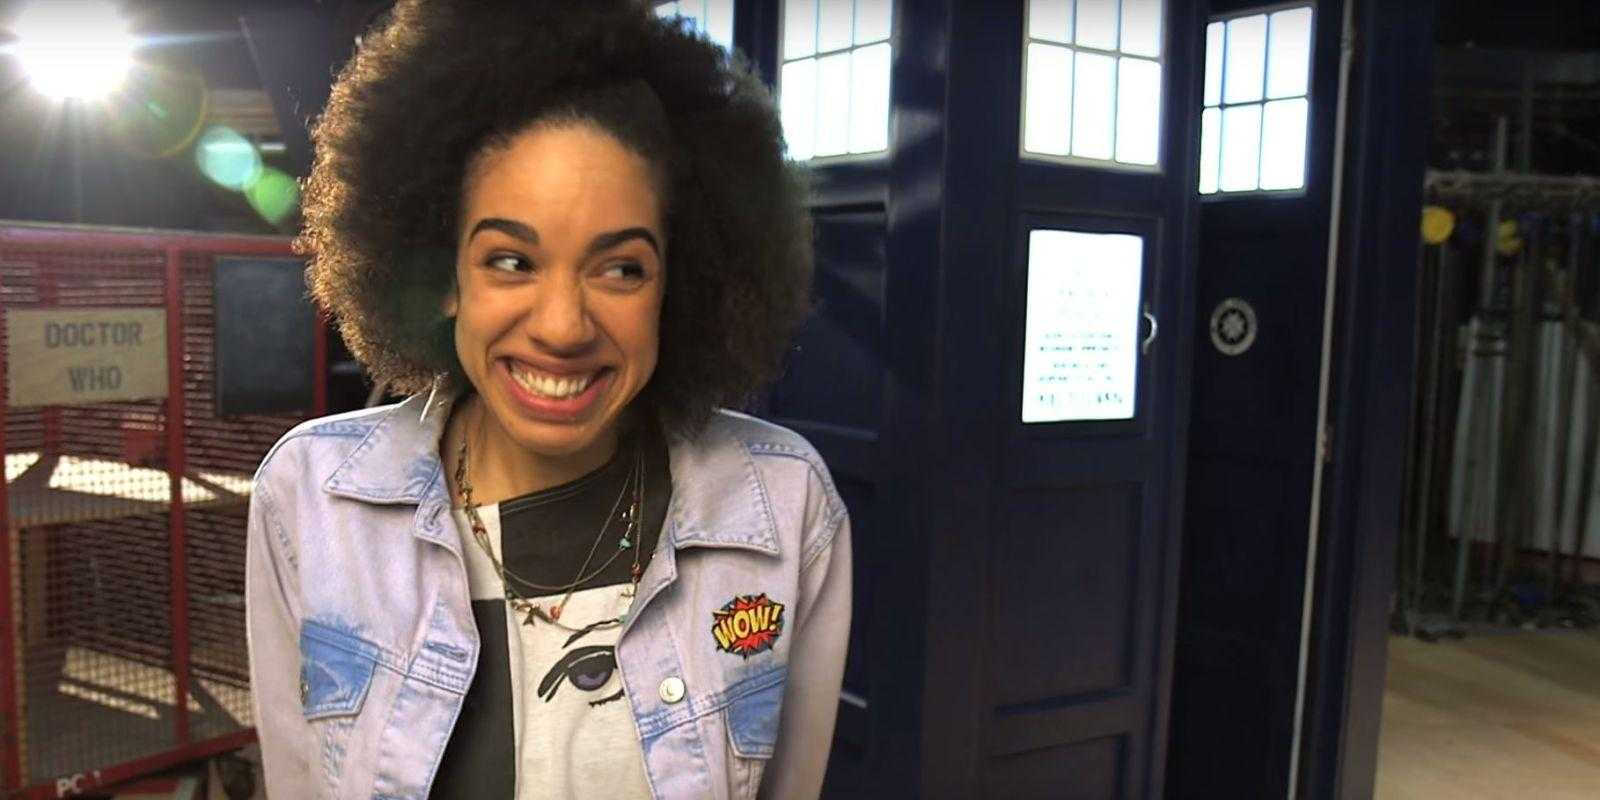 Pearl Mackie Trolls Donald Trump In Doctor Who Episode | doctor